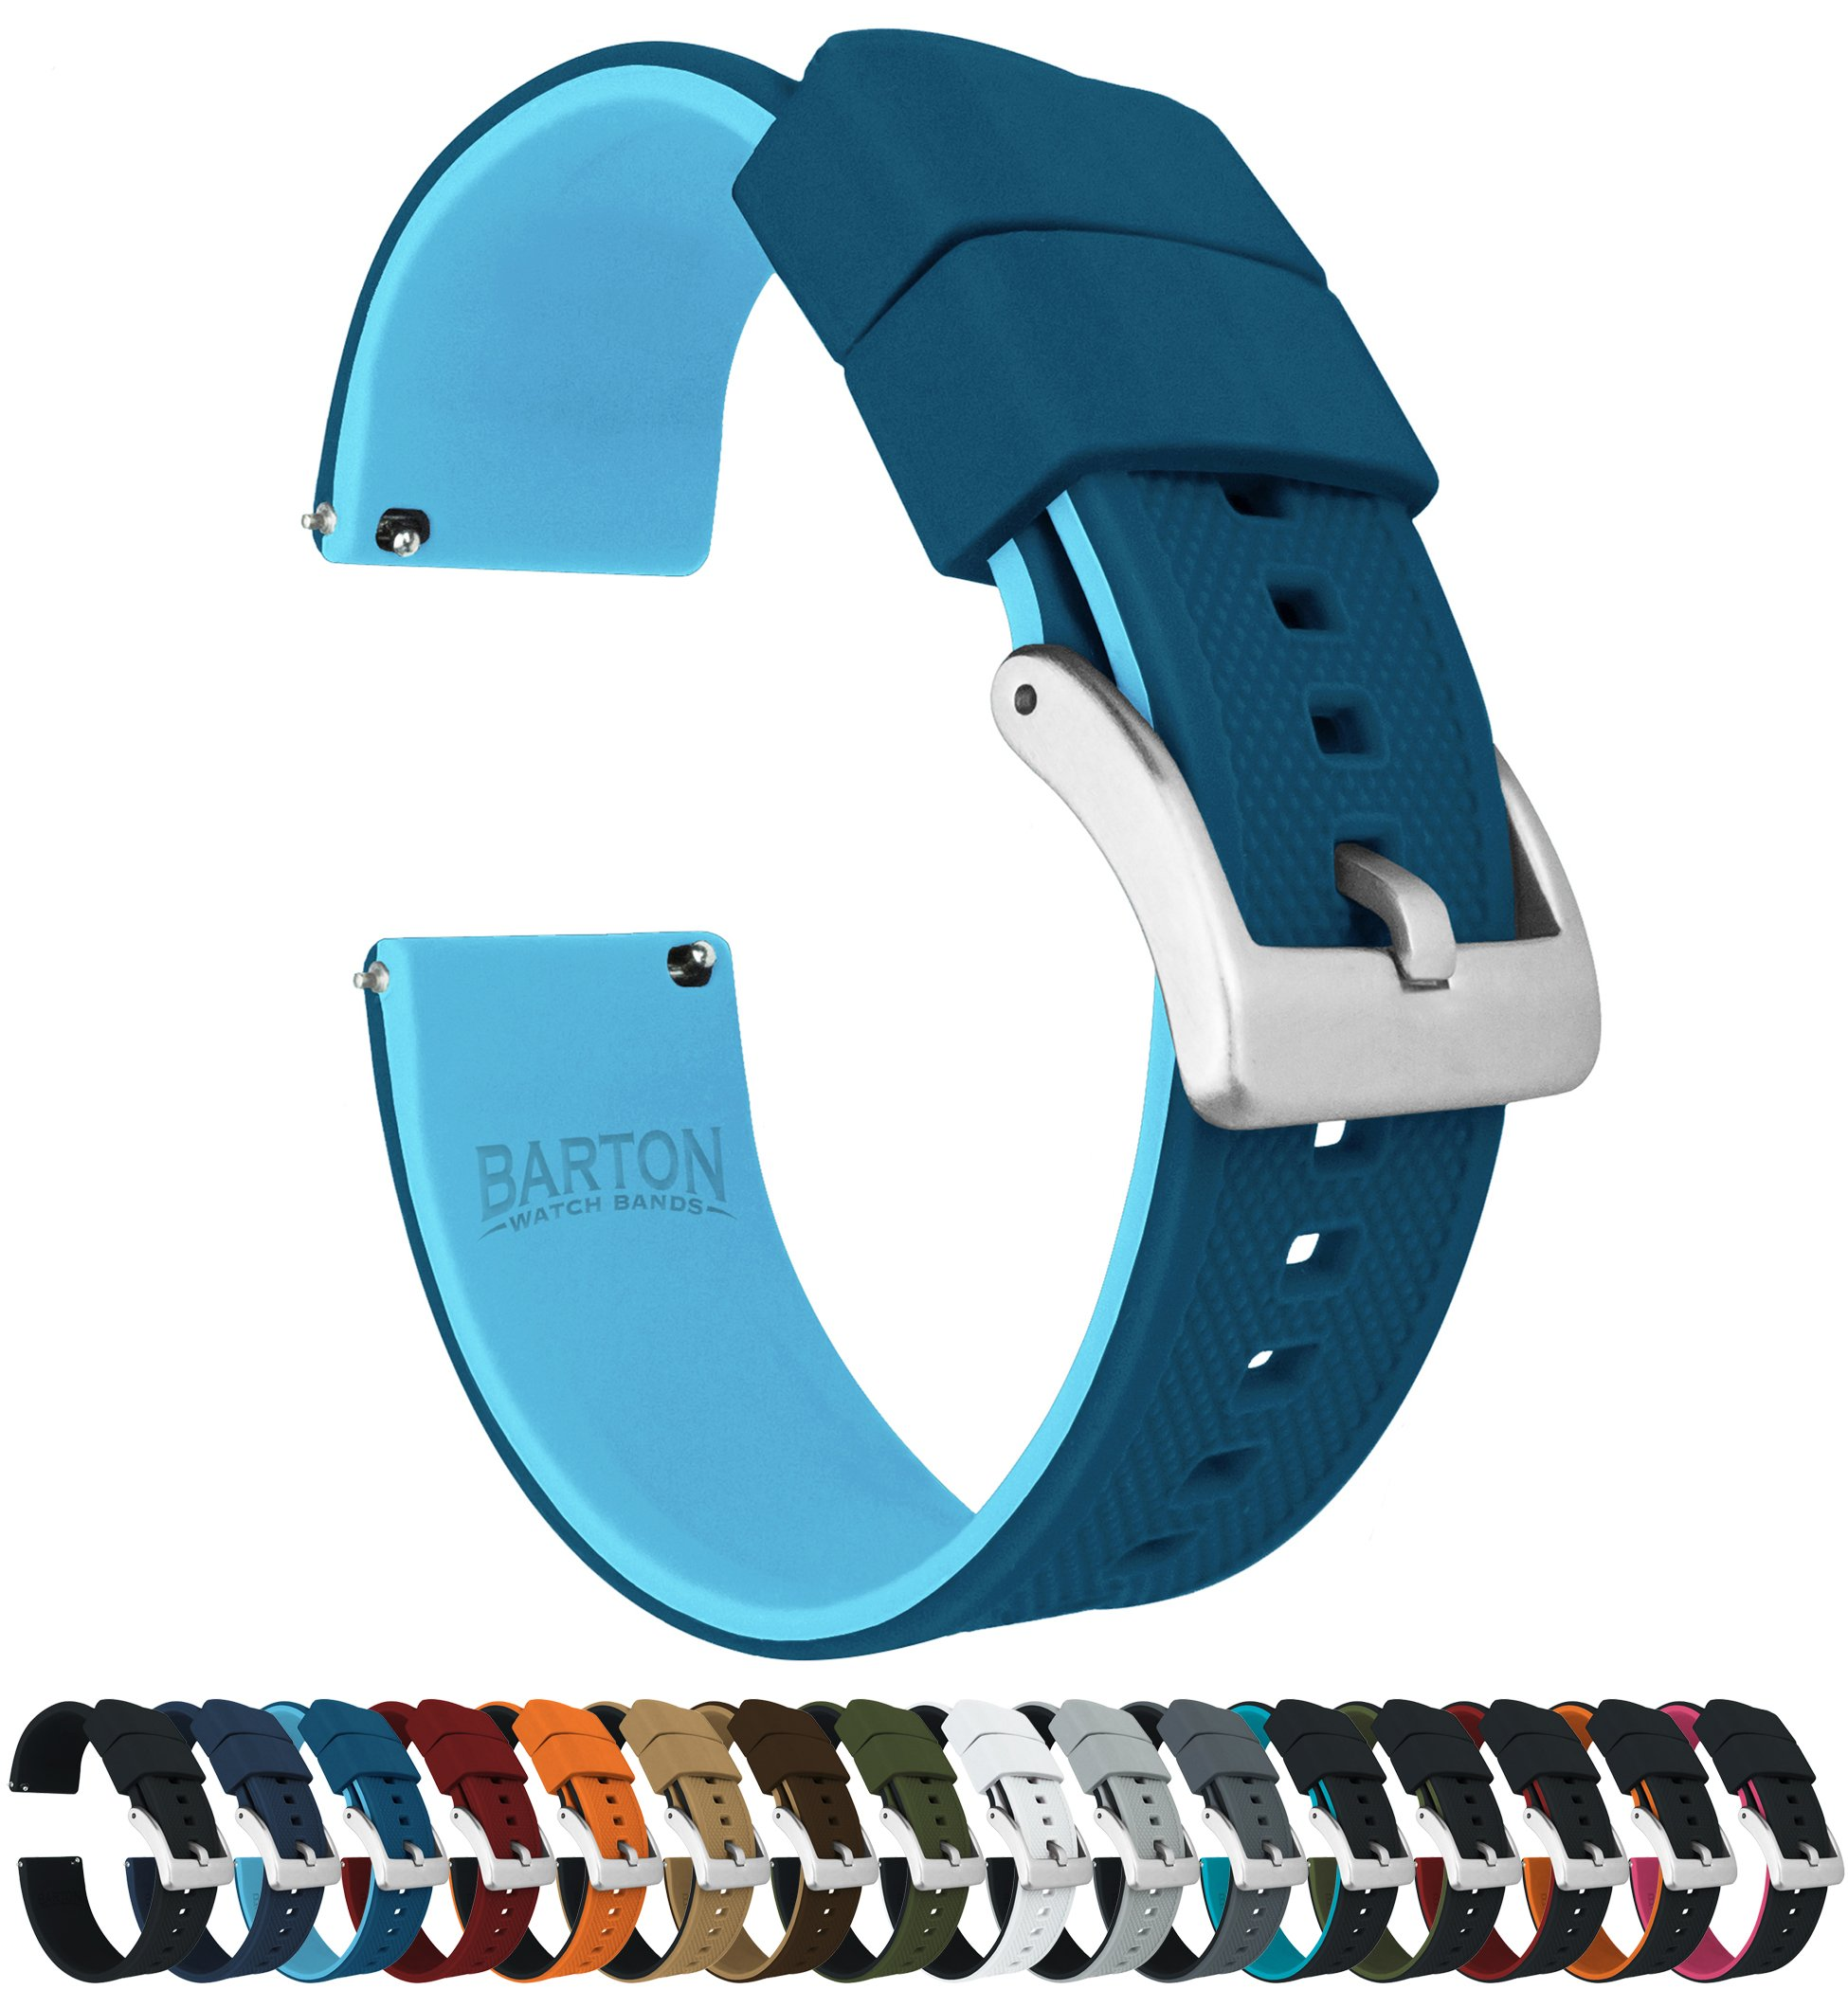 20mm Two Tone Blue (Flatwater) - Barton Elite Silicone Watch Bands - Quick Release - Choose Strap Color & Width by Barton Watch Bands